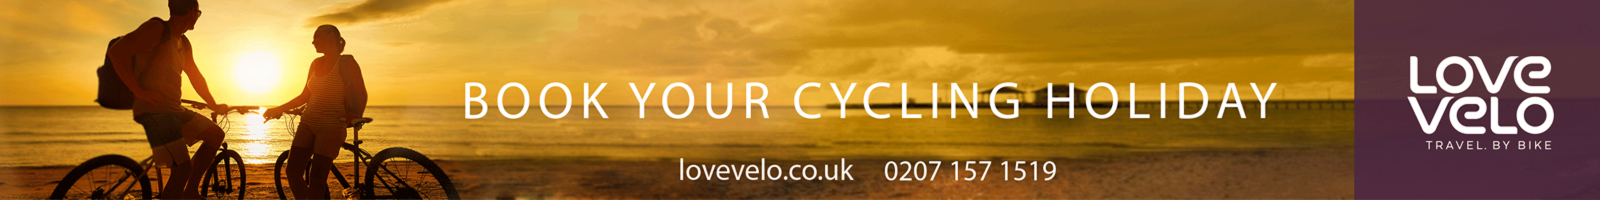 Book you cycling holiday with Love Velo